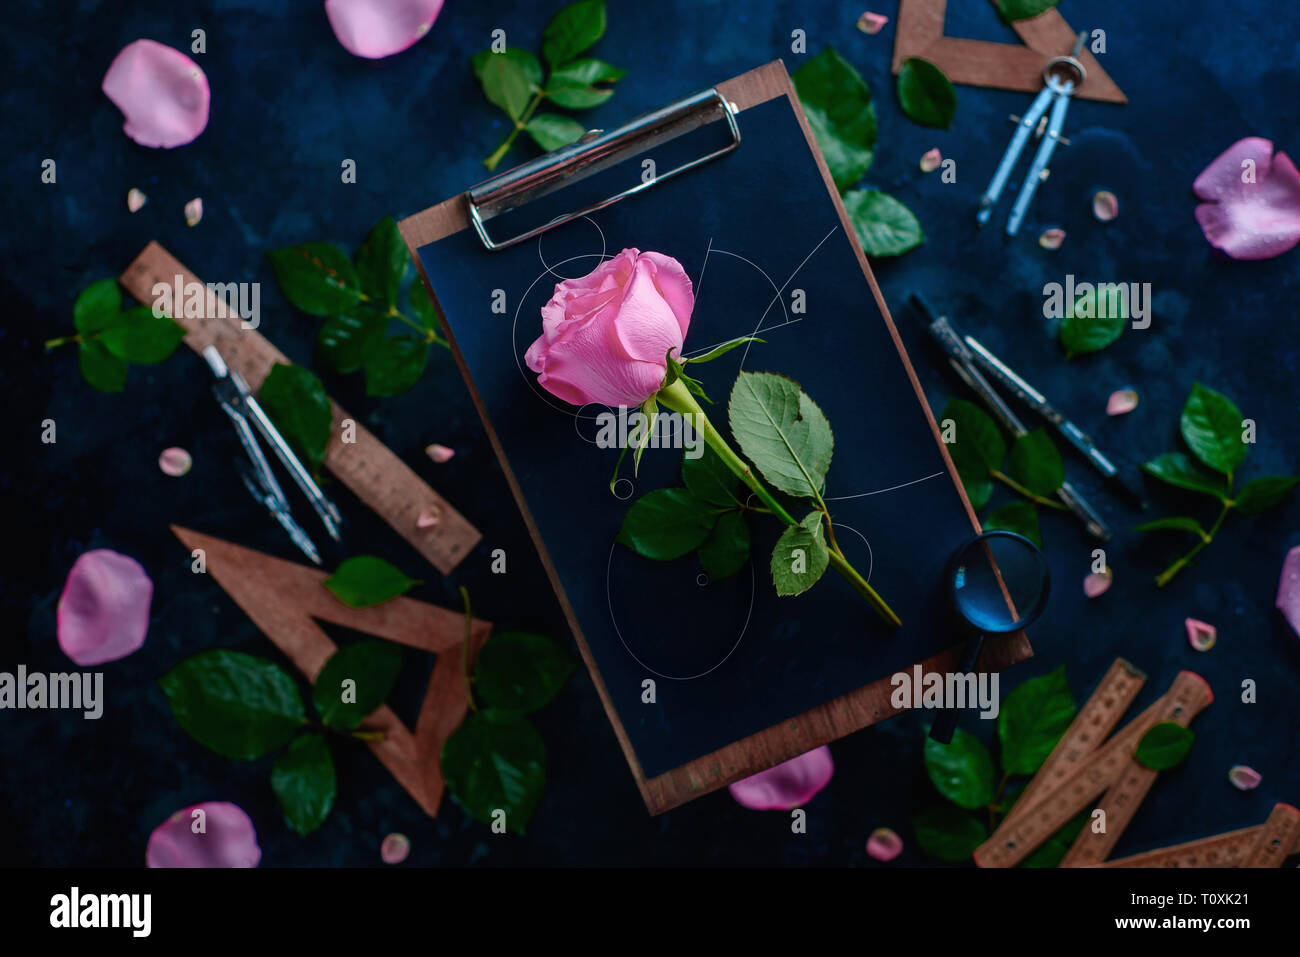 Rose flower with blueprint lines on a wooden clipboard with pencils, rulers, and compasses around. Nature and geometry conceptual flat lay - Stock Image